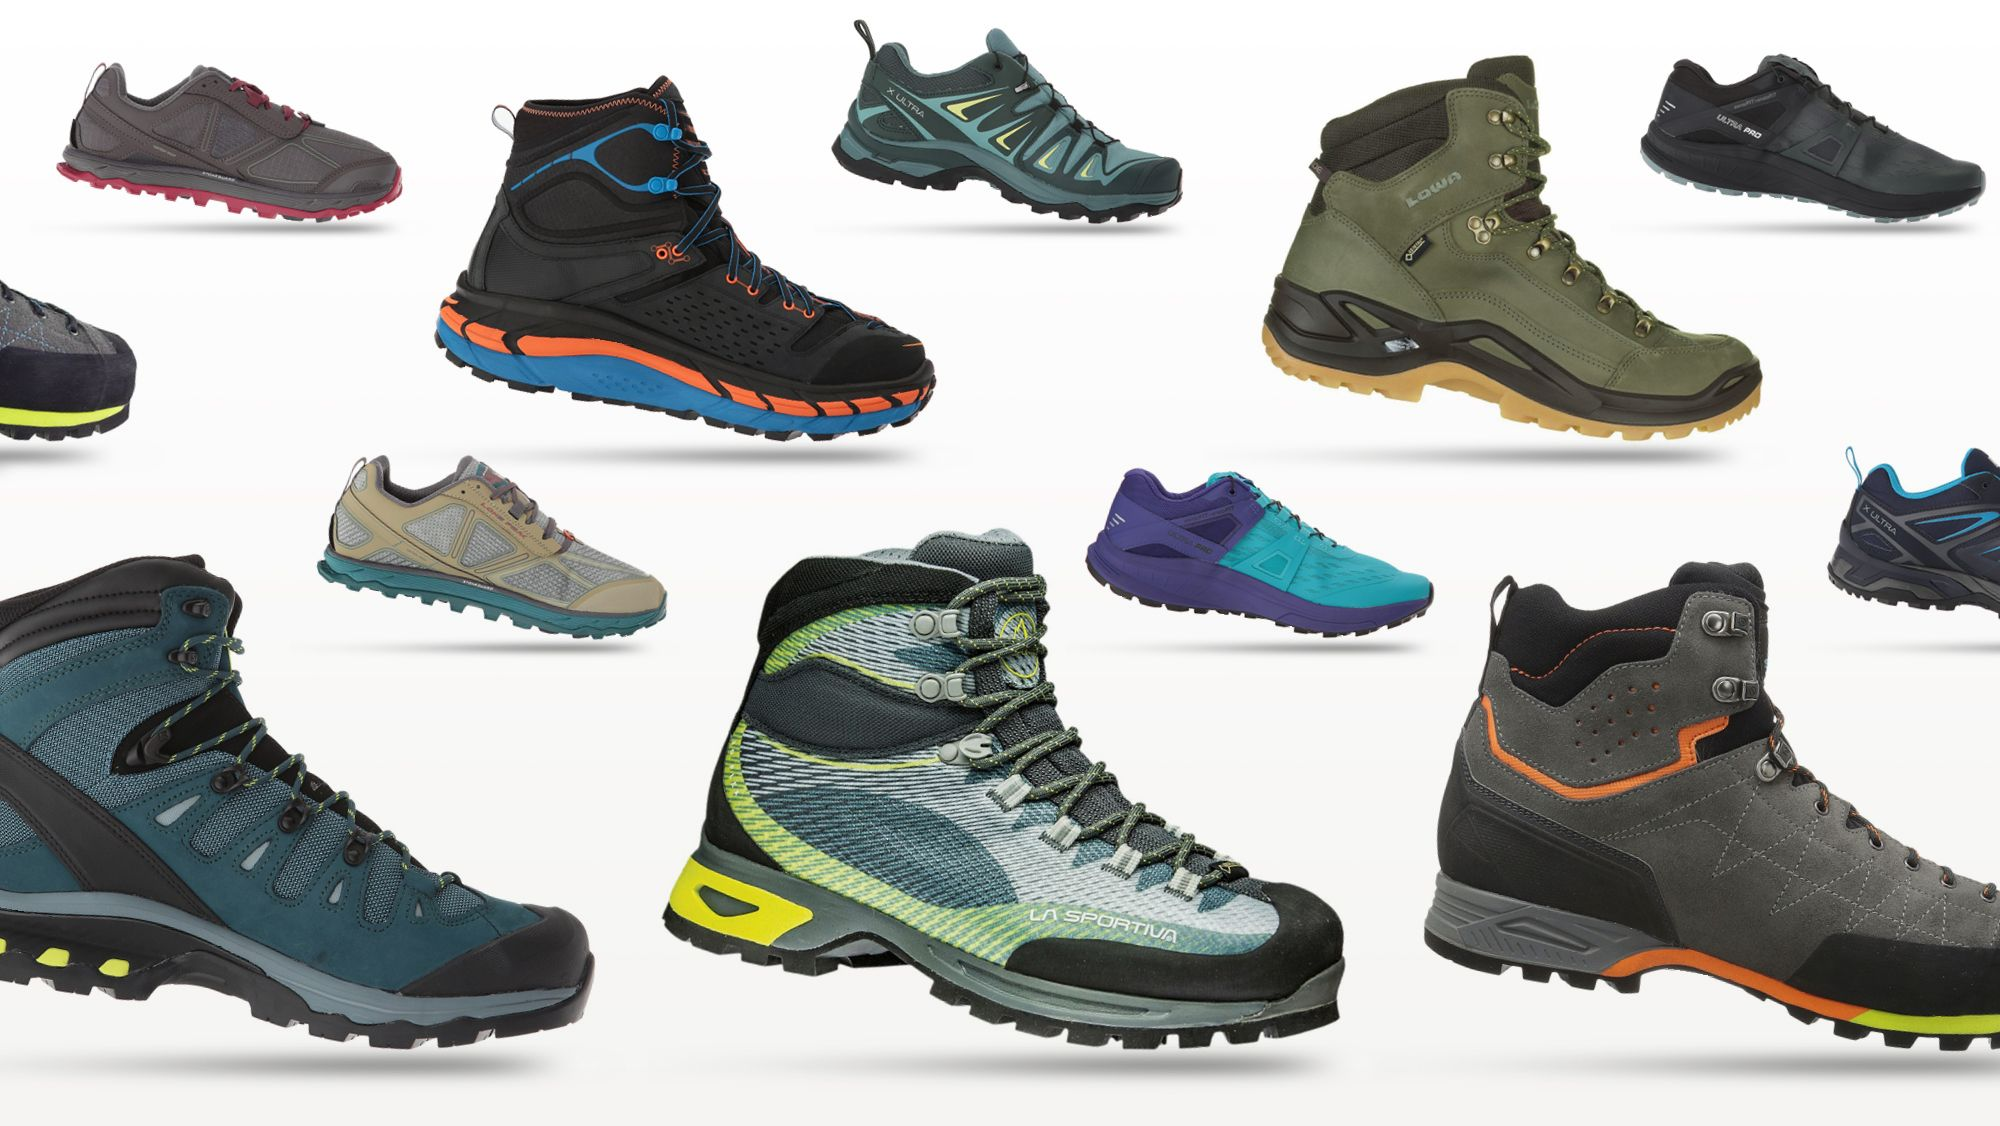 09f06ff59b5d6 The 10 Best Hiking Boots and Trail-Running Shoes This Year